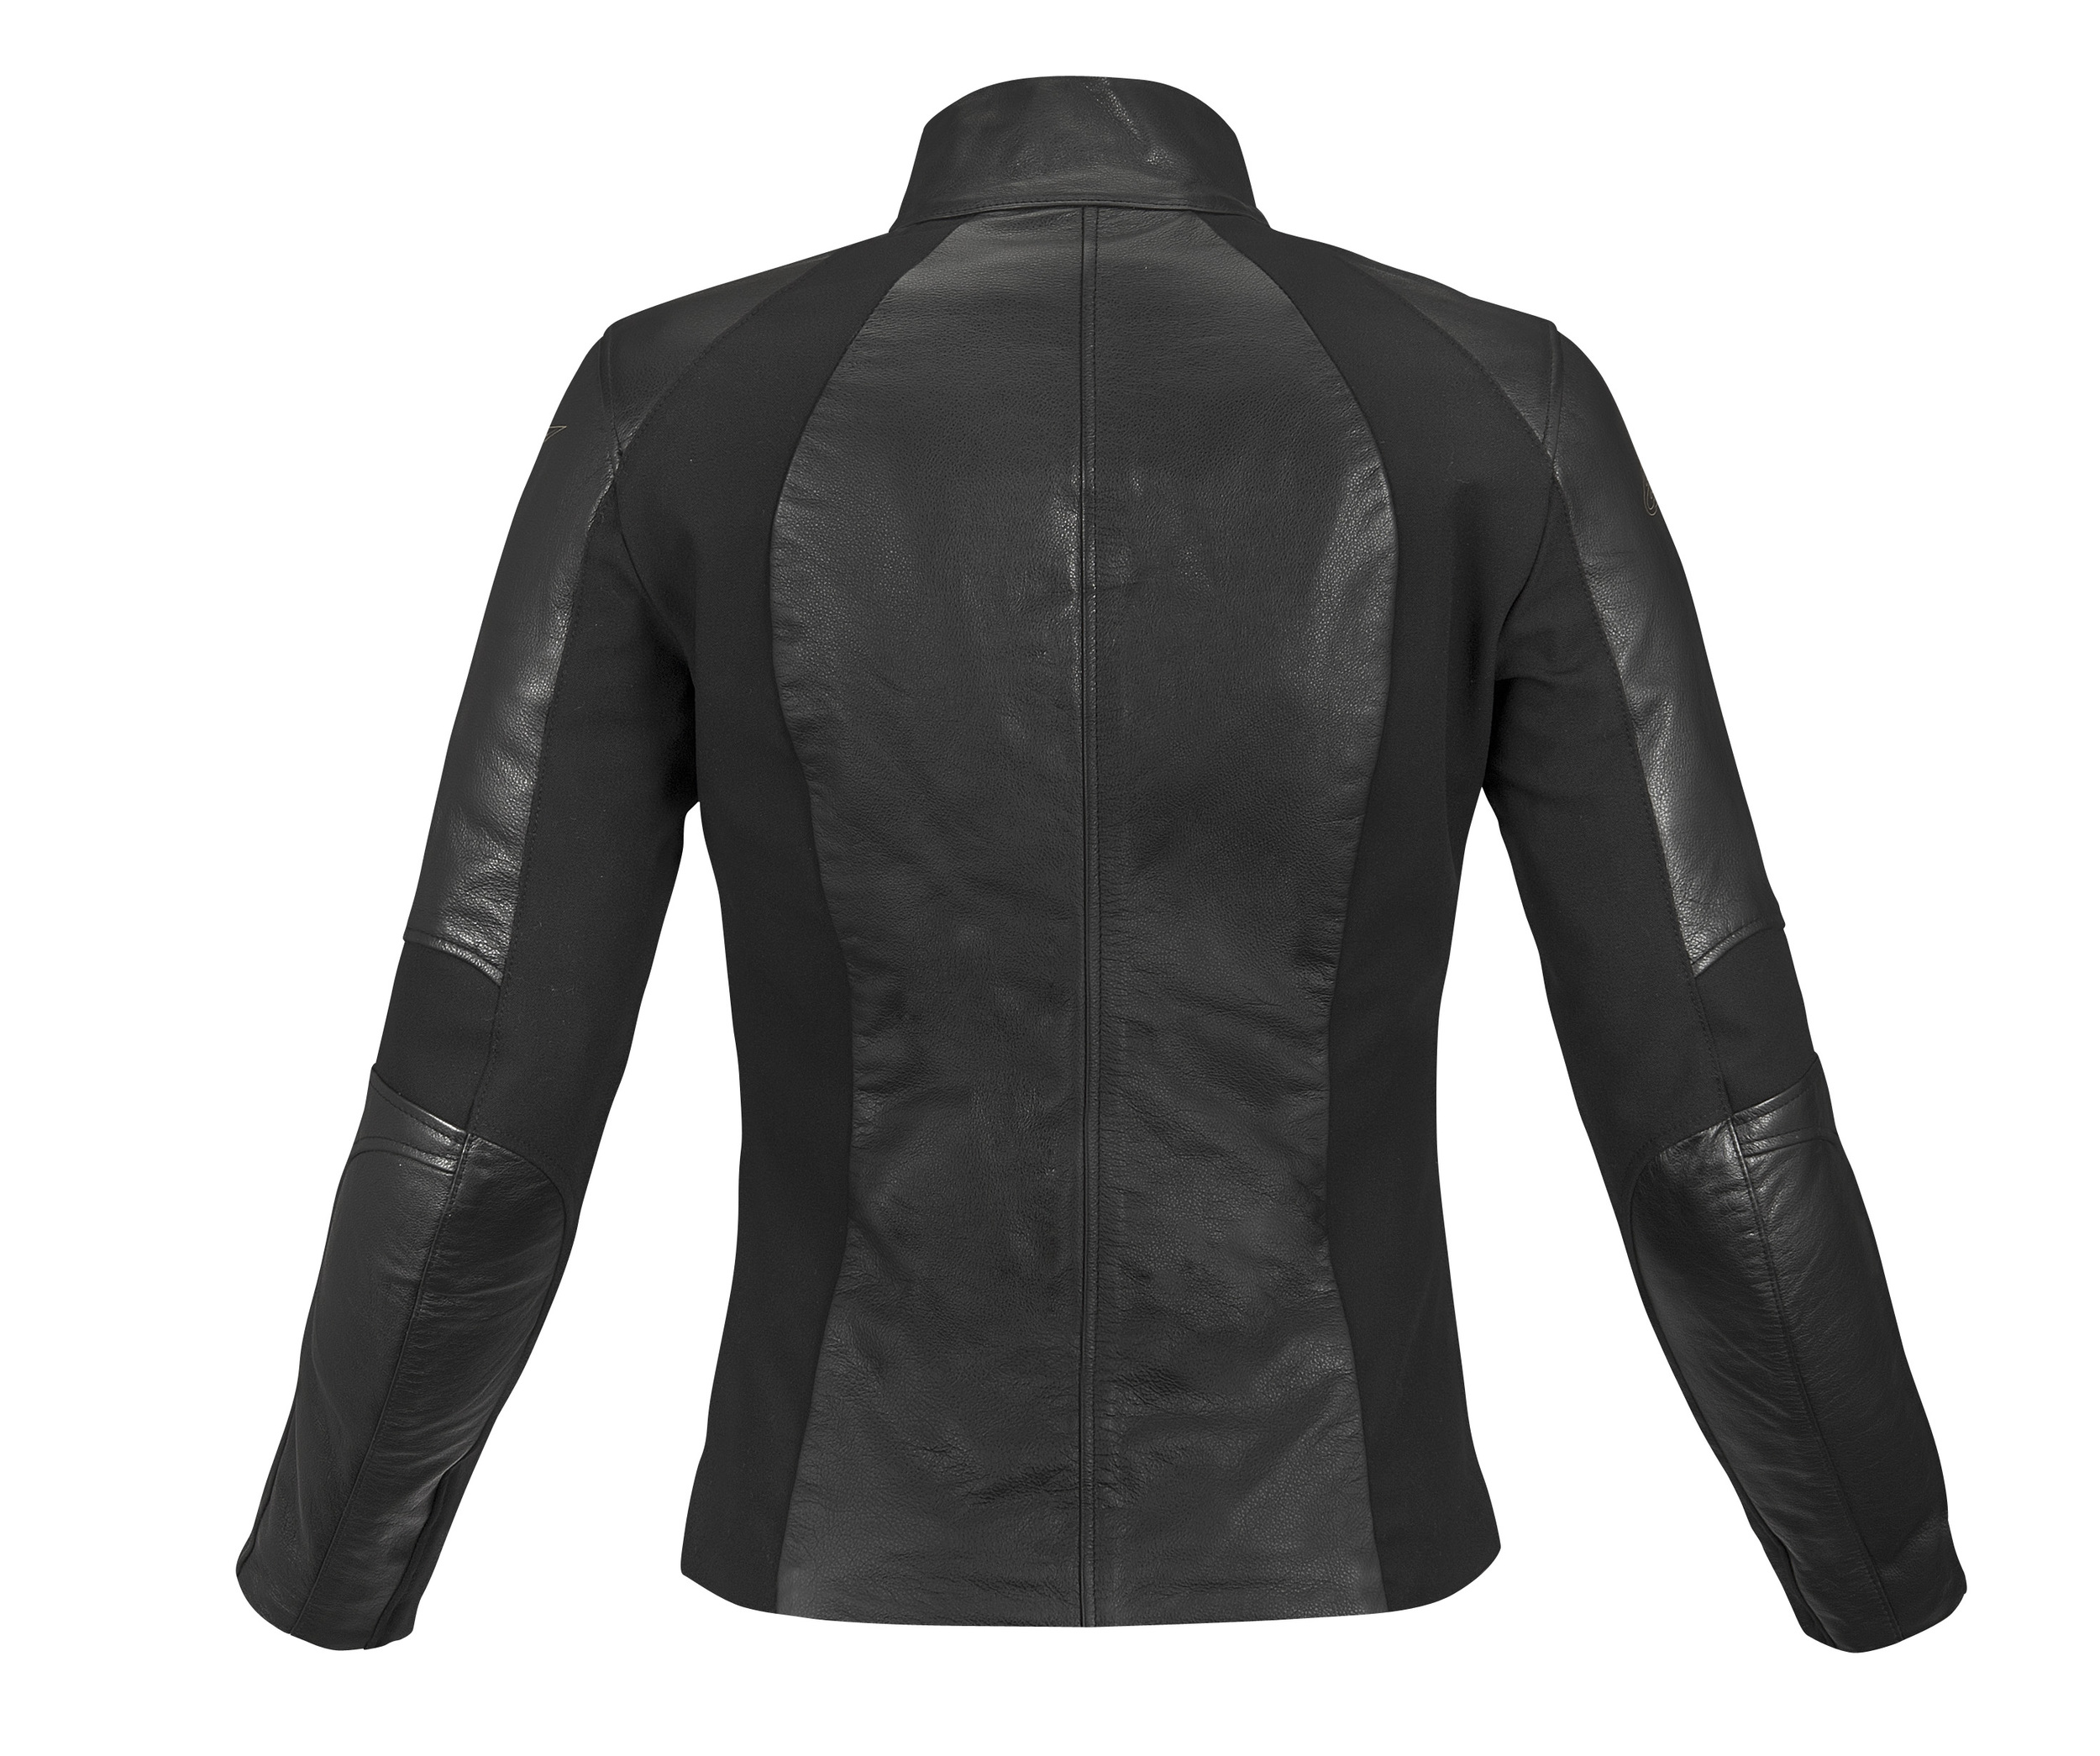 limpid in sight harmonious colors sale uk Alpinestars Vika Leather Jacket Review — GearChic